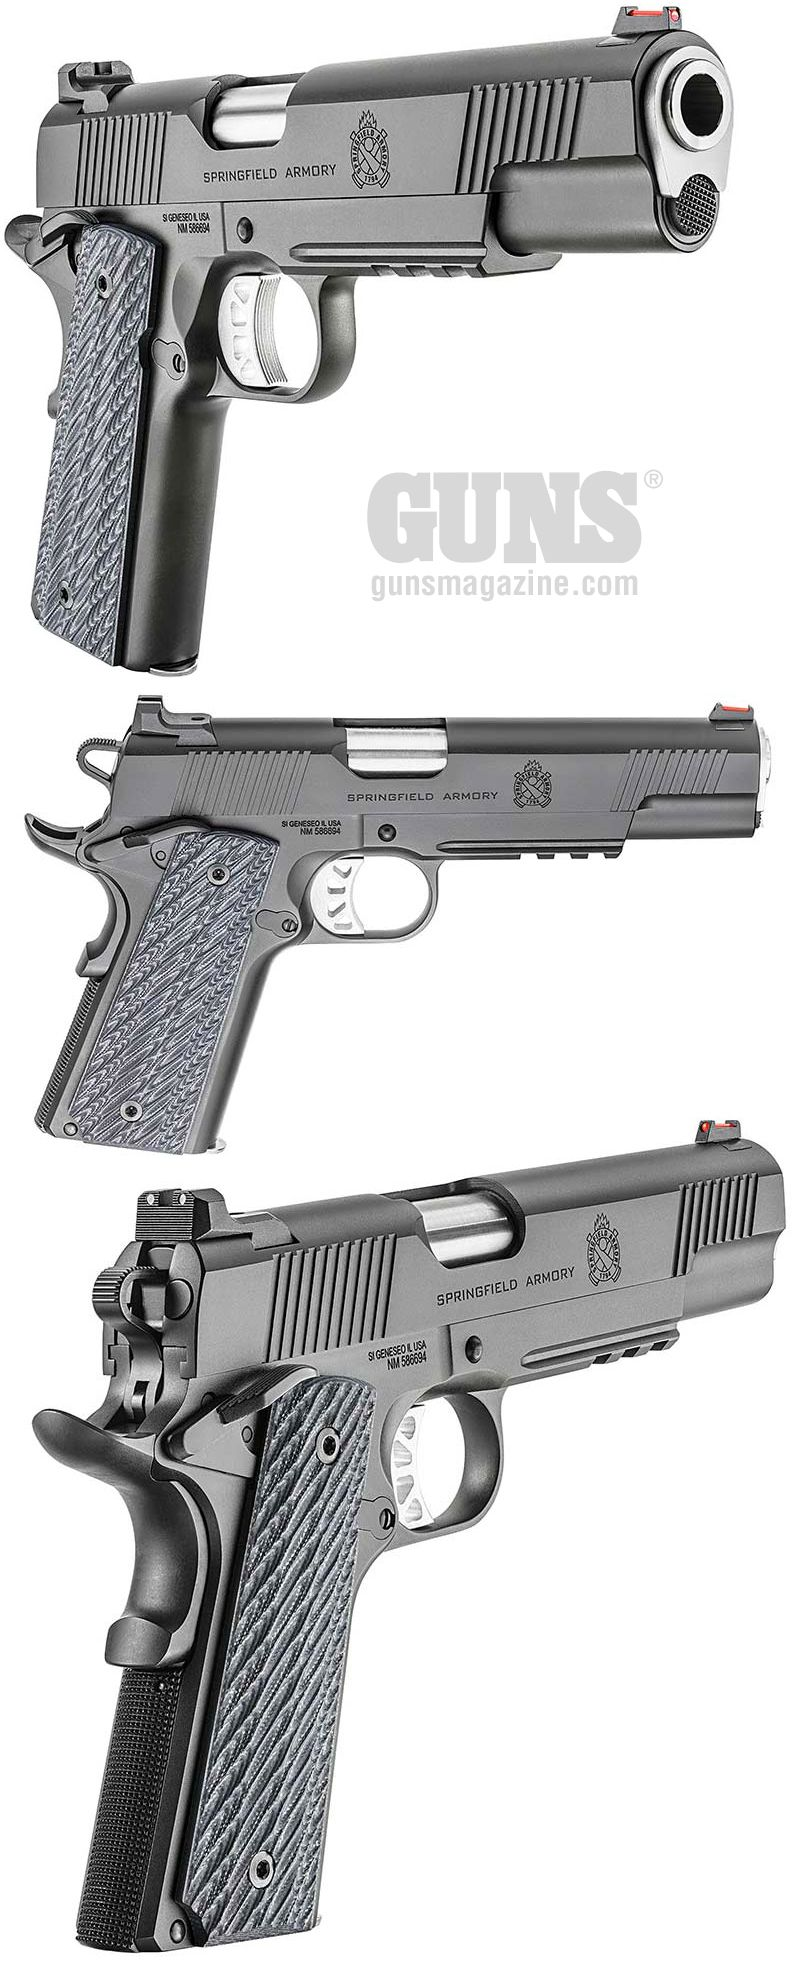 By Dave Workman | Springfield Armory recently unveiled the